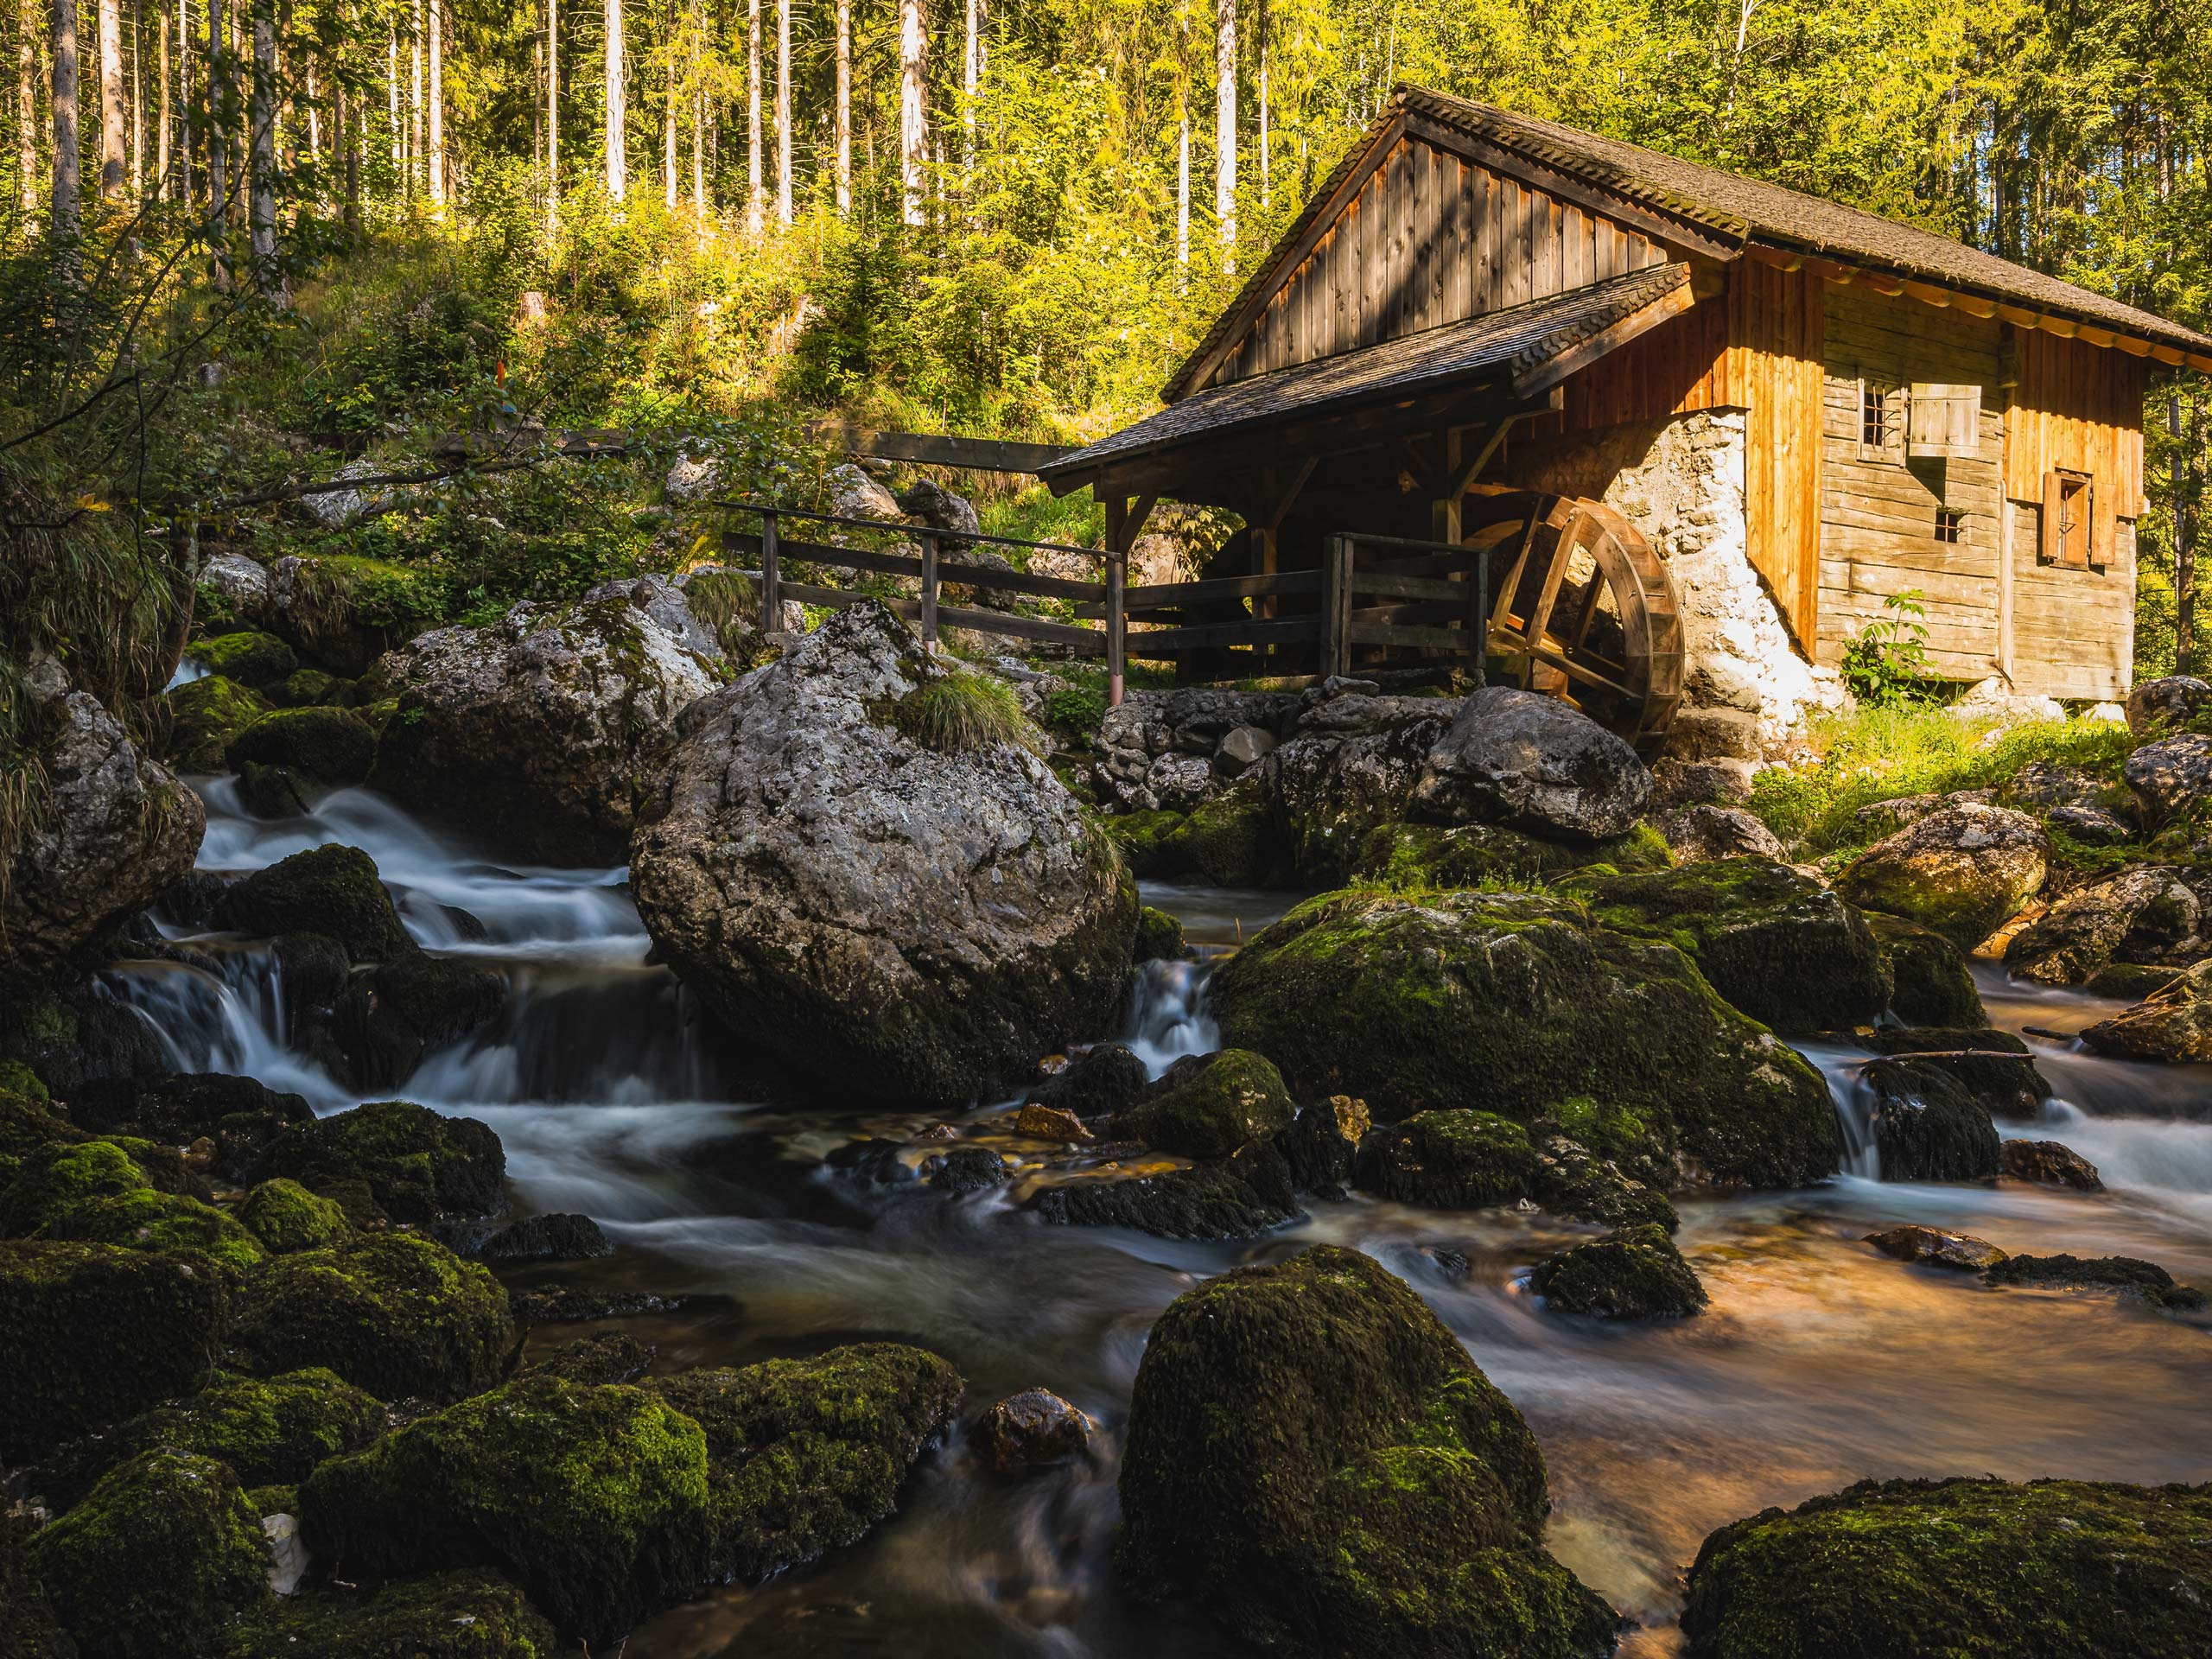 Golling waterfalls tumbling down rocks beside hut in Austria